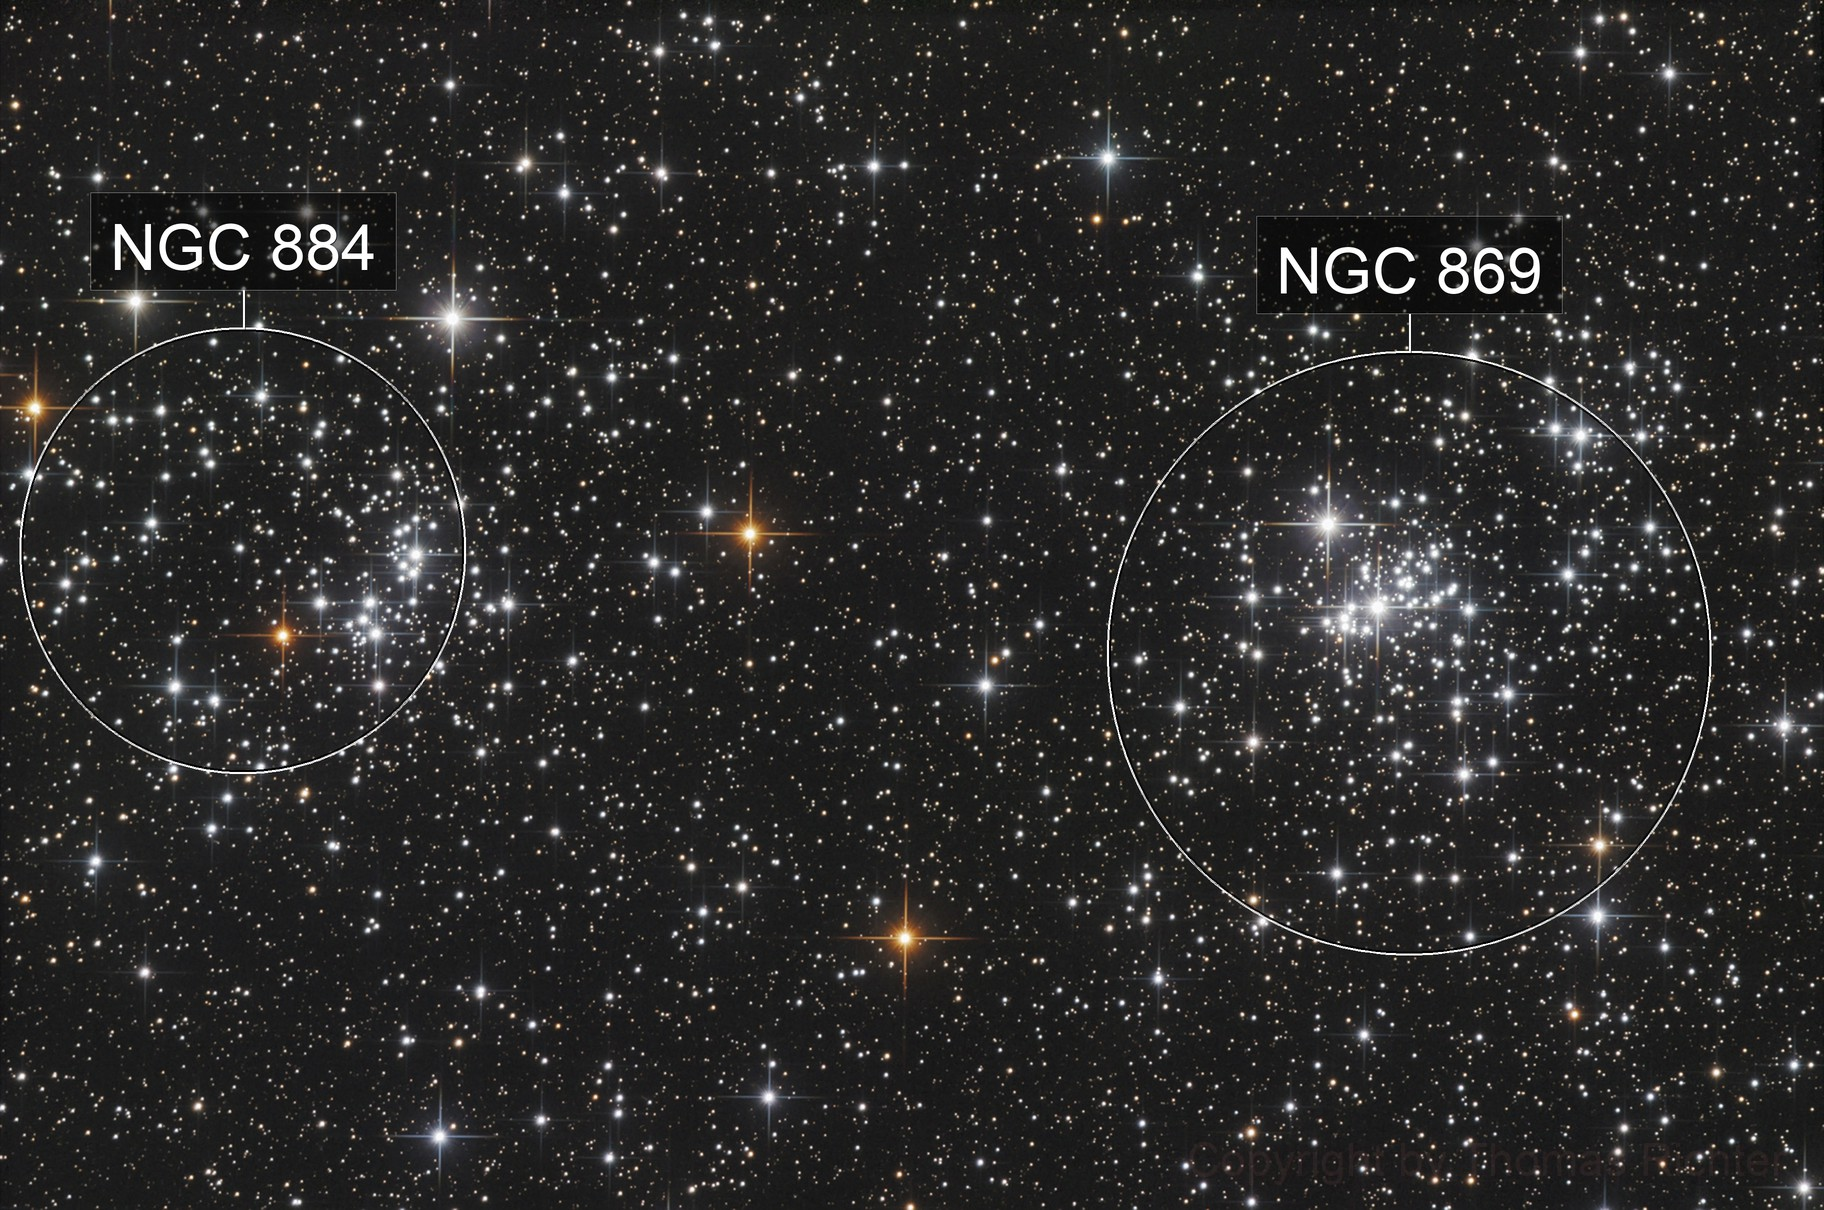 Double Cluster - h Persei and χ Persei